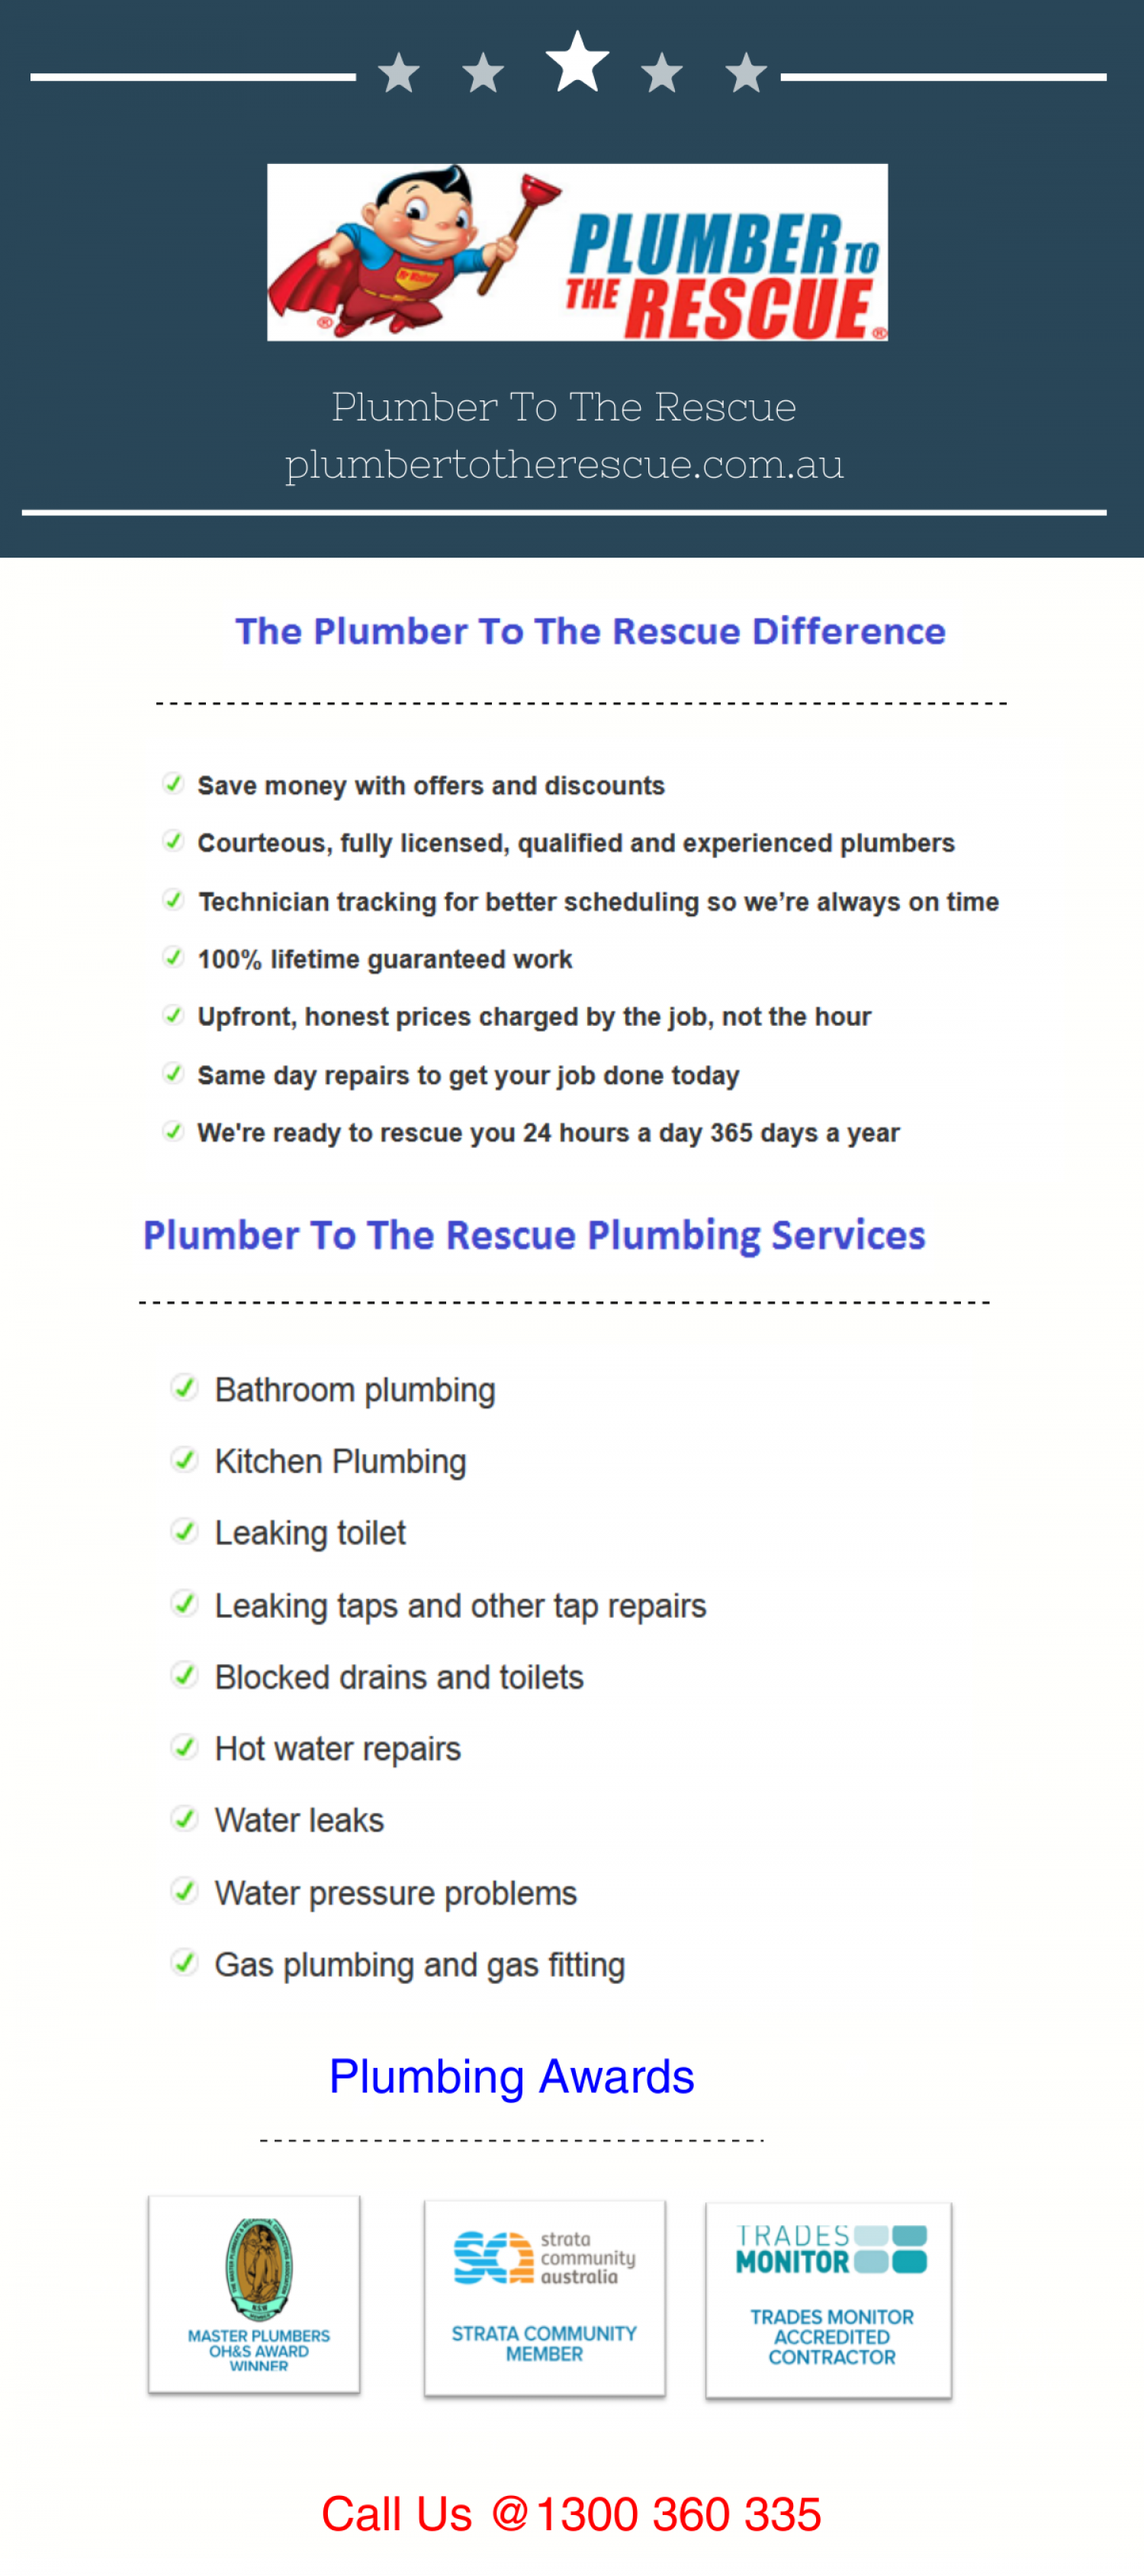 Plumber To The Rescue Plumbing Services